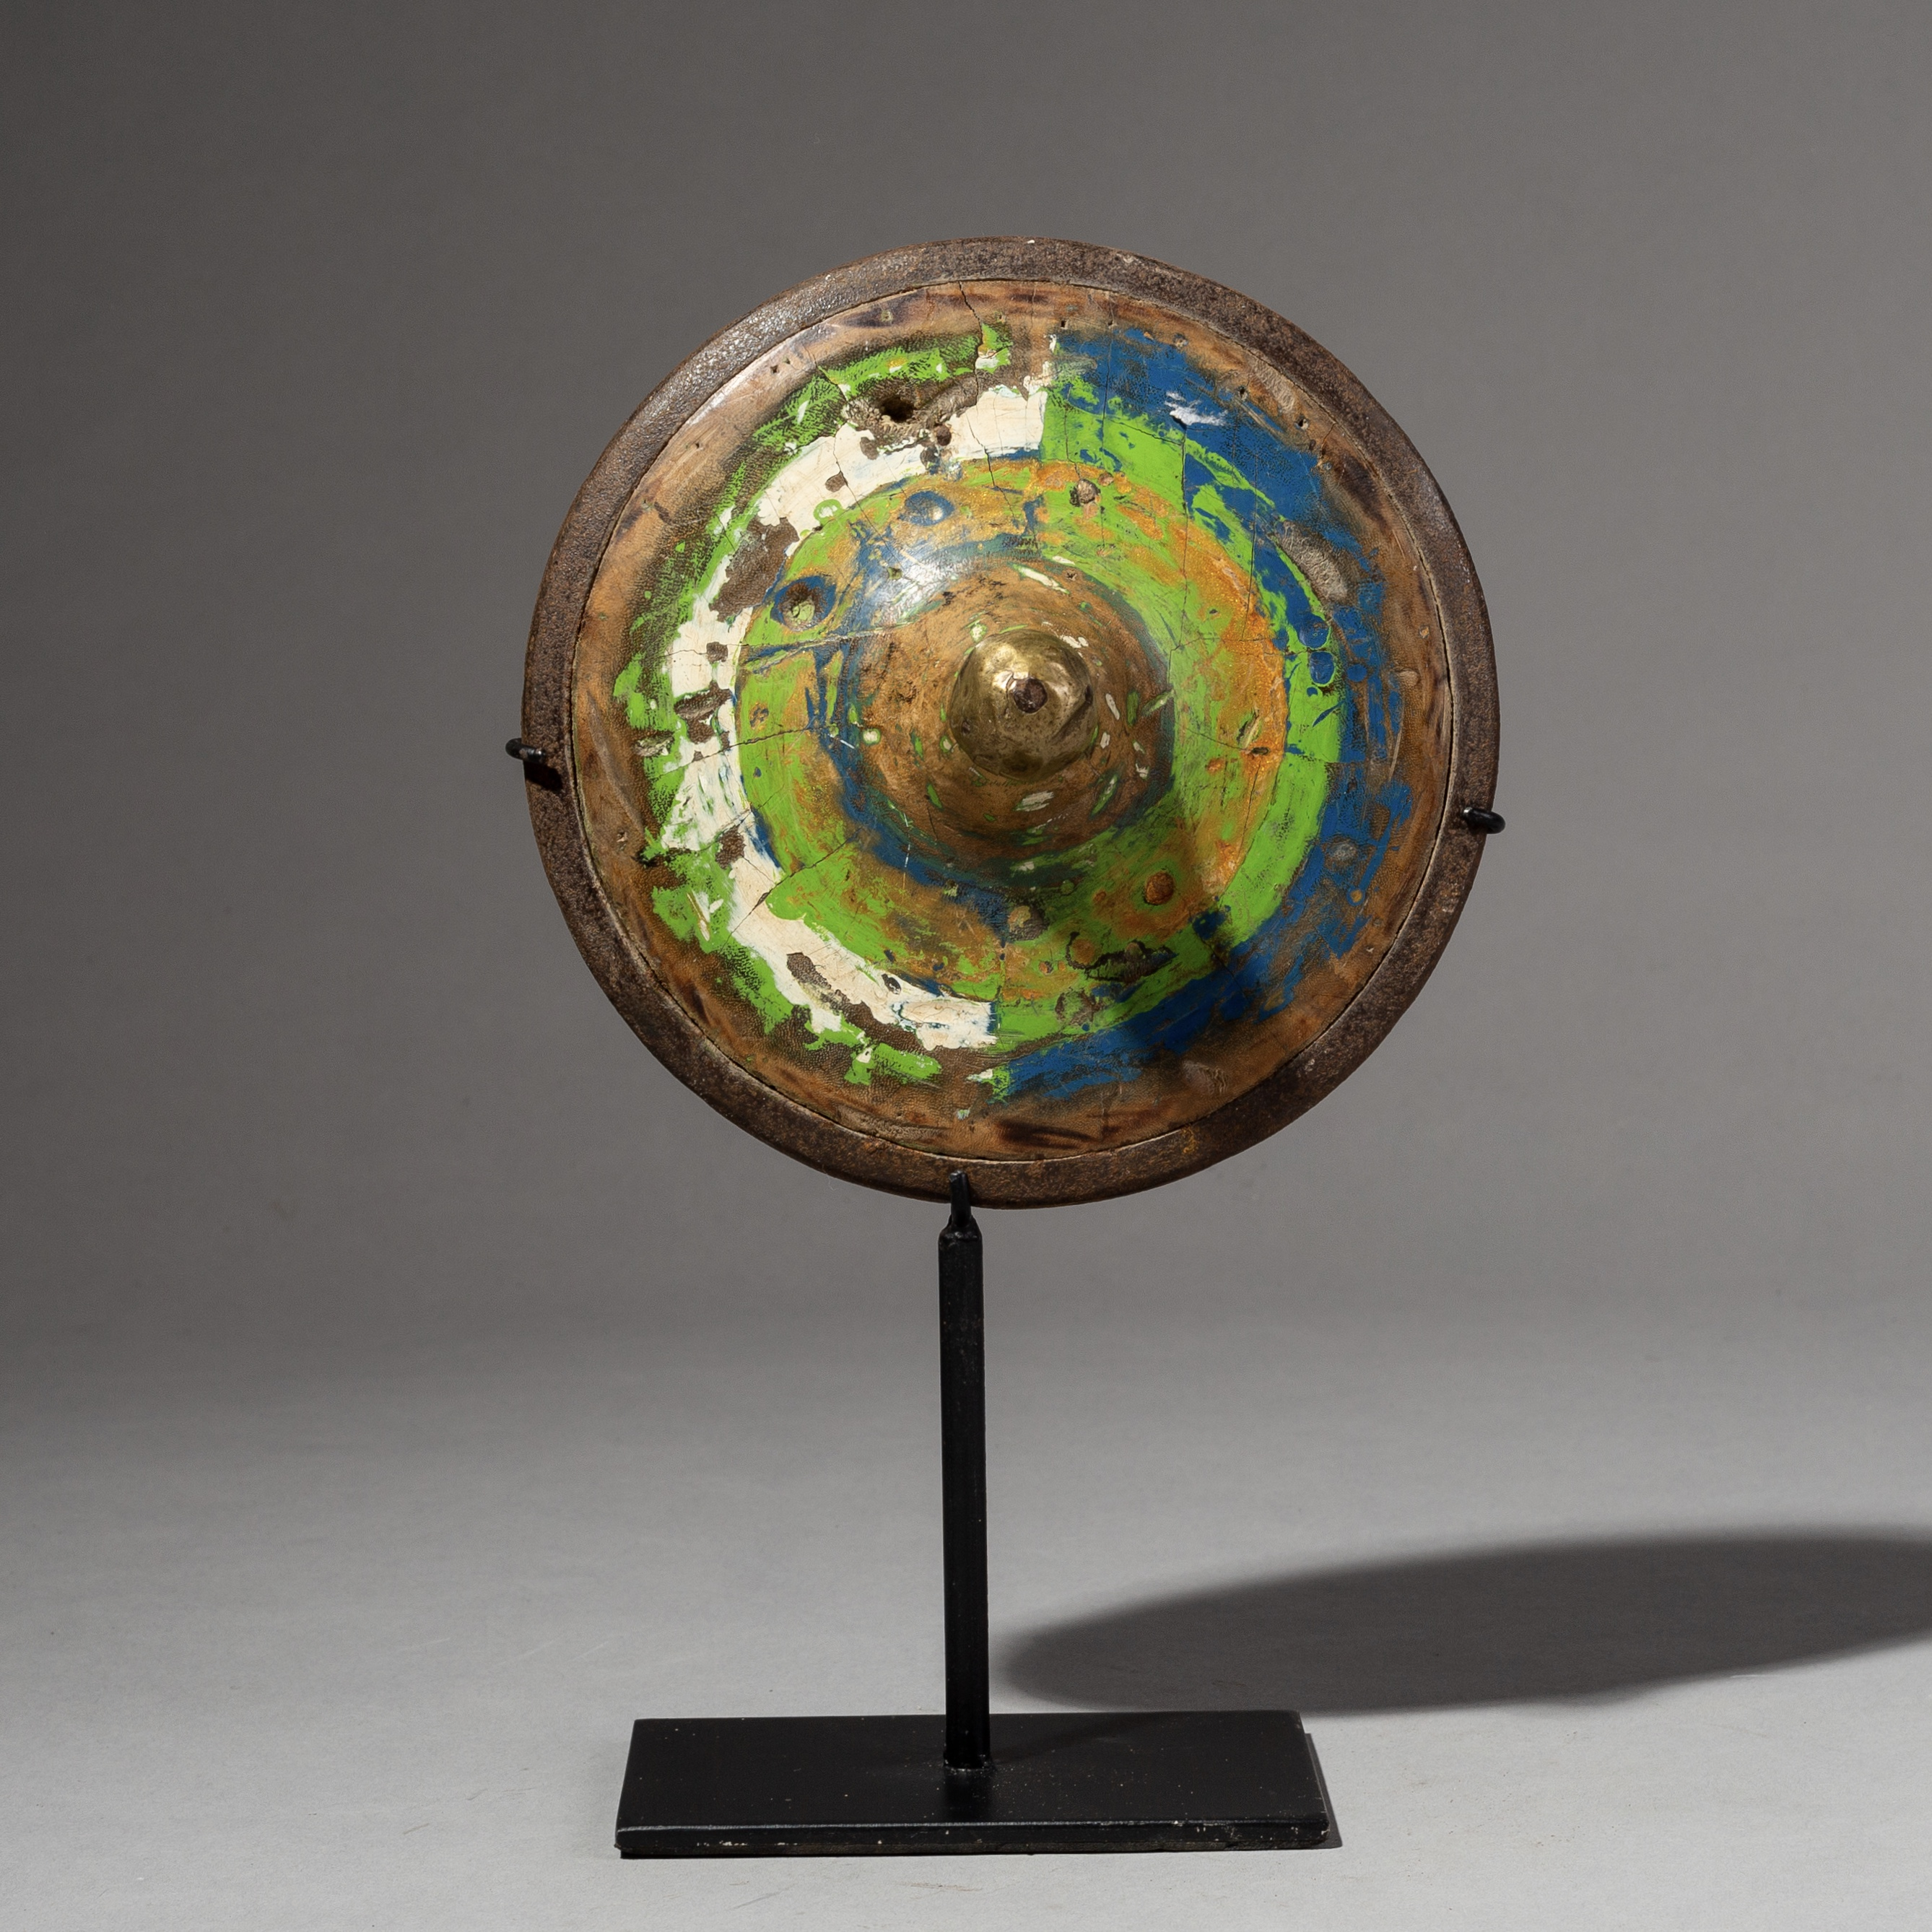 sold - AN ARTISTIC SPINNING TOP FROM INDONESIA( No 2108 )